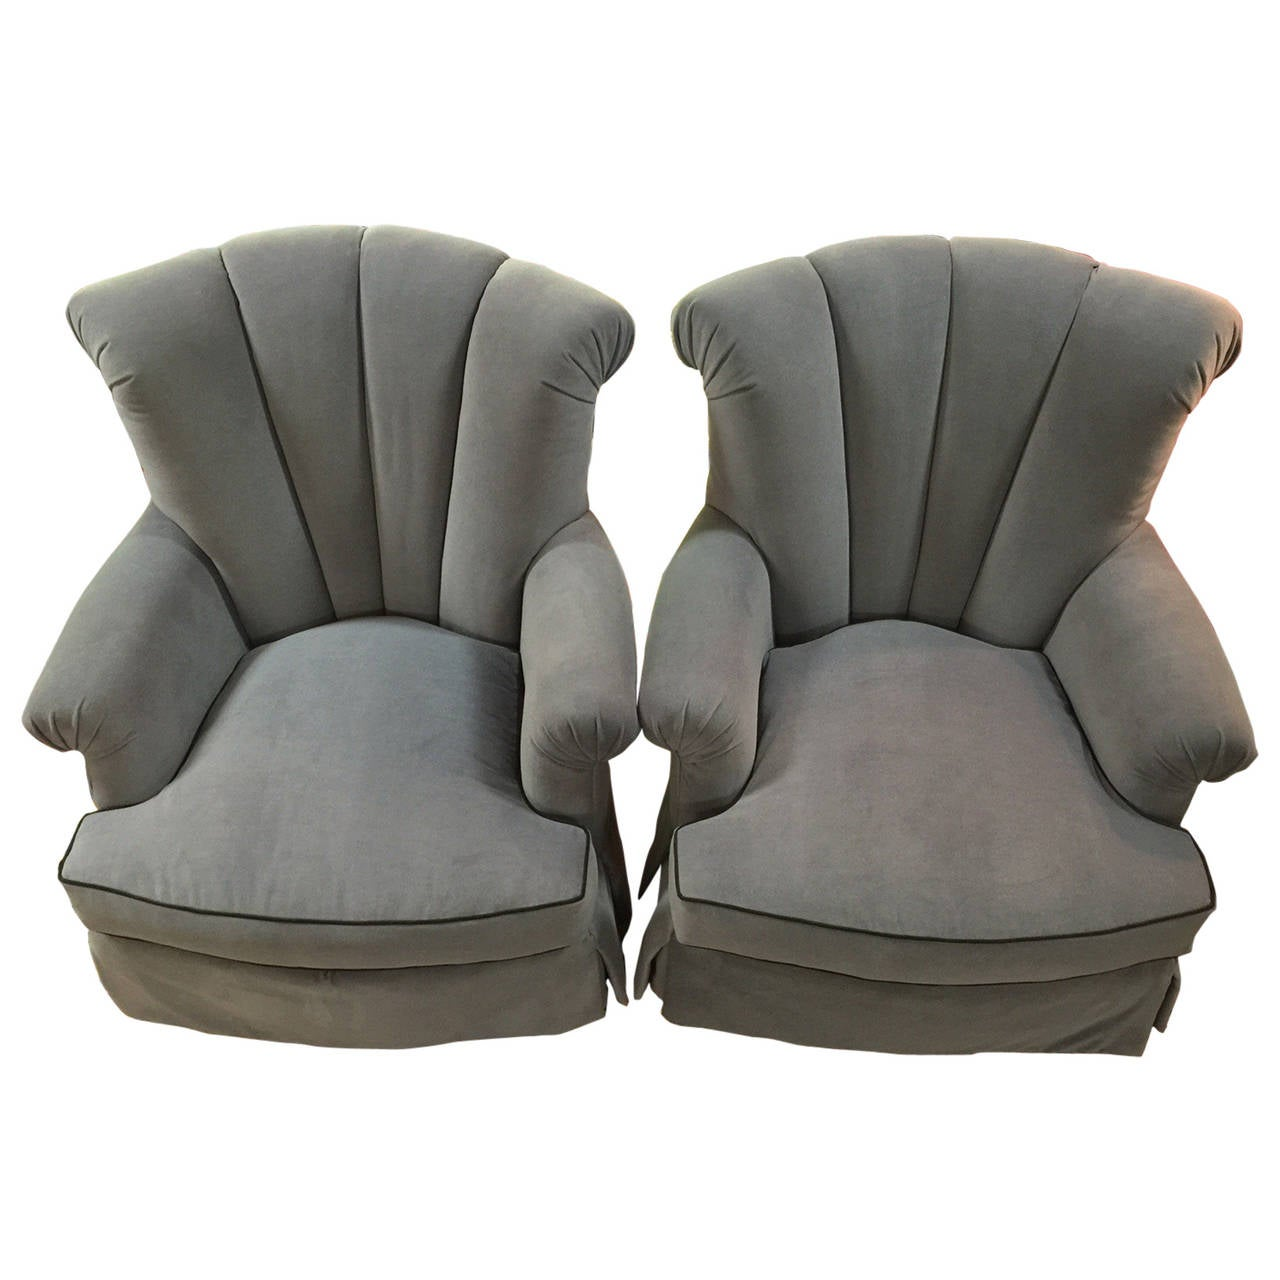 Marge carson overstuffed armchairs with swivel at 1stdibs for Overstuffed armchair